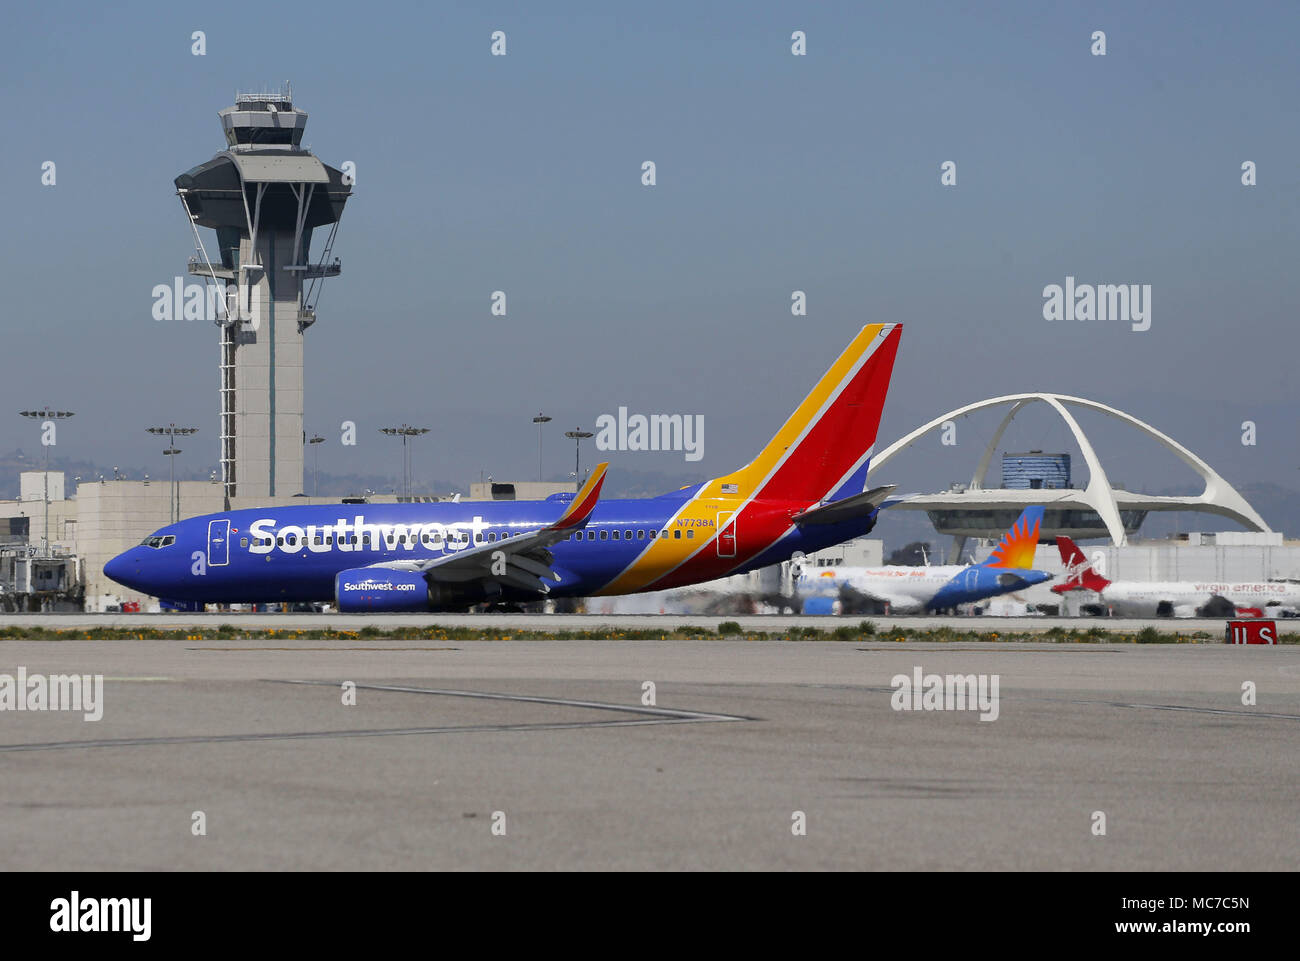 Southwest Wire | March 28 2018 Los Angeles U S A Southwest Airlines Aircraft